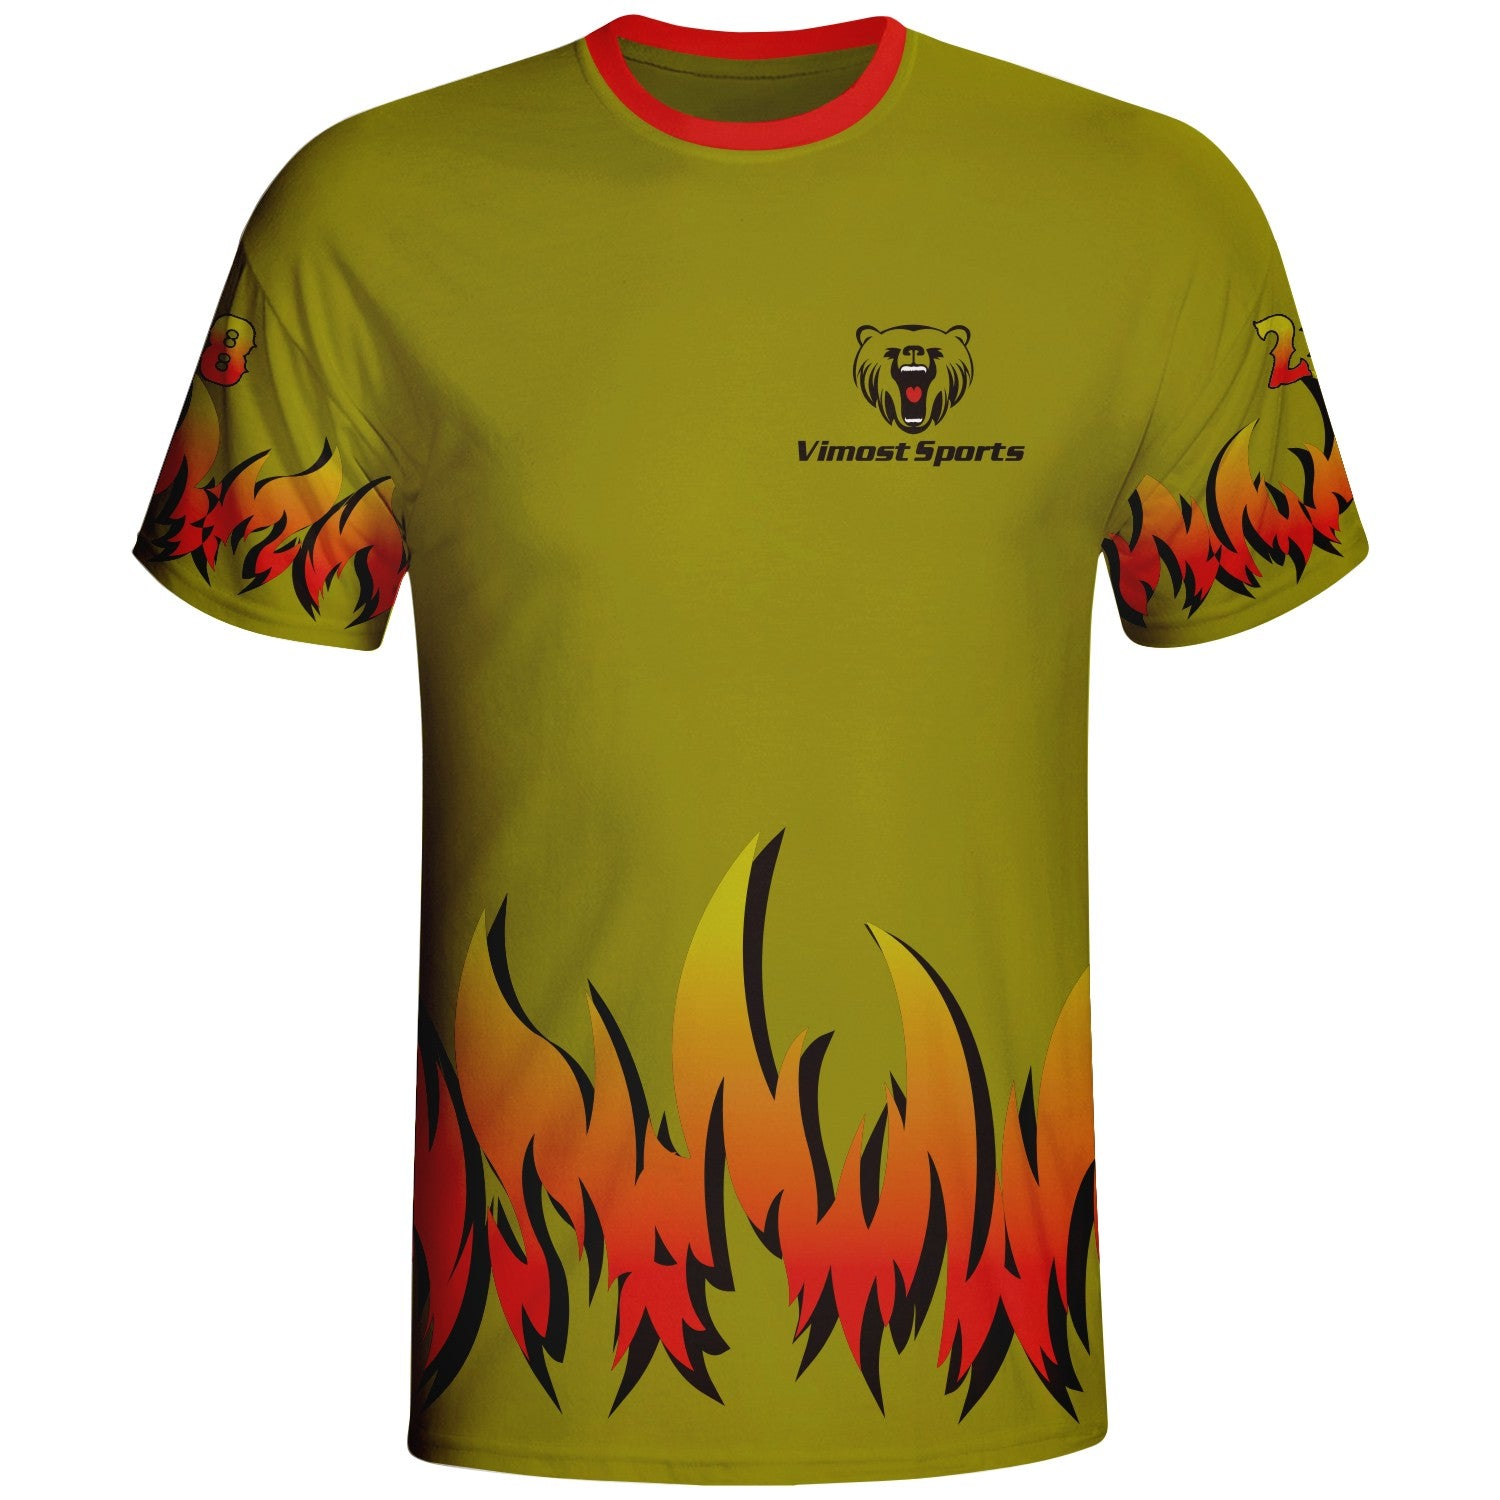 Fire Design Custom Gamertag Shirts Apparel Manufacturer